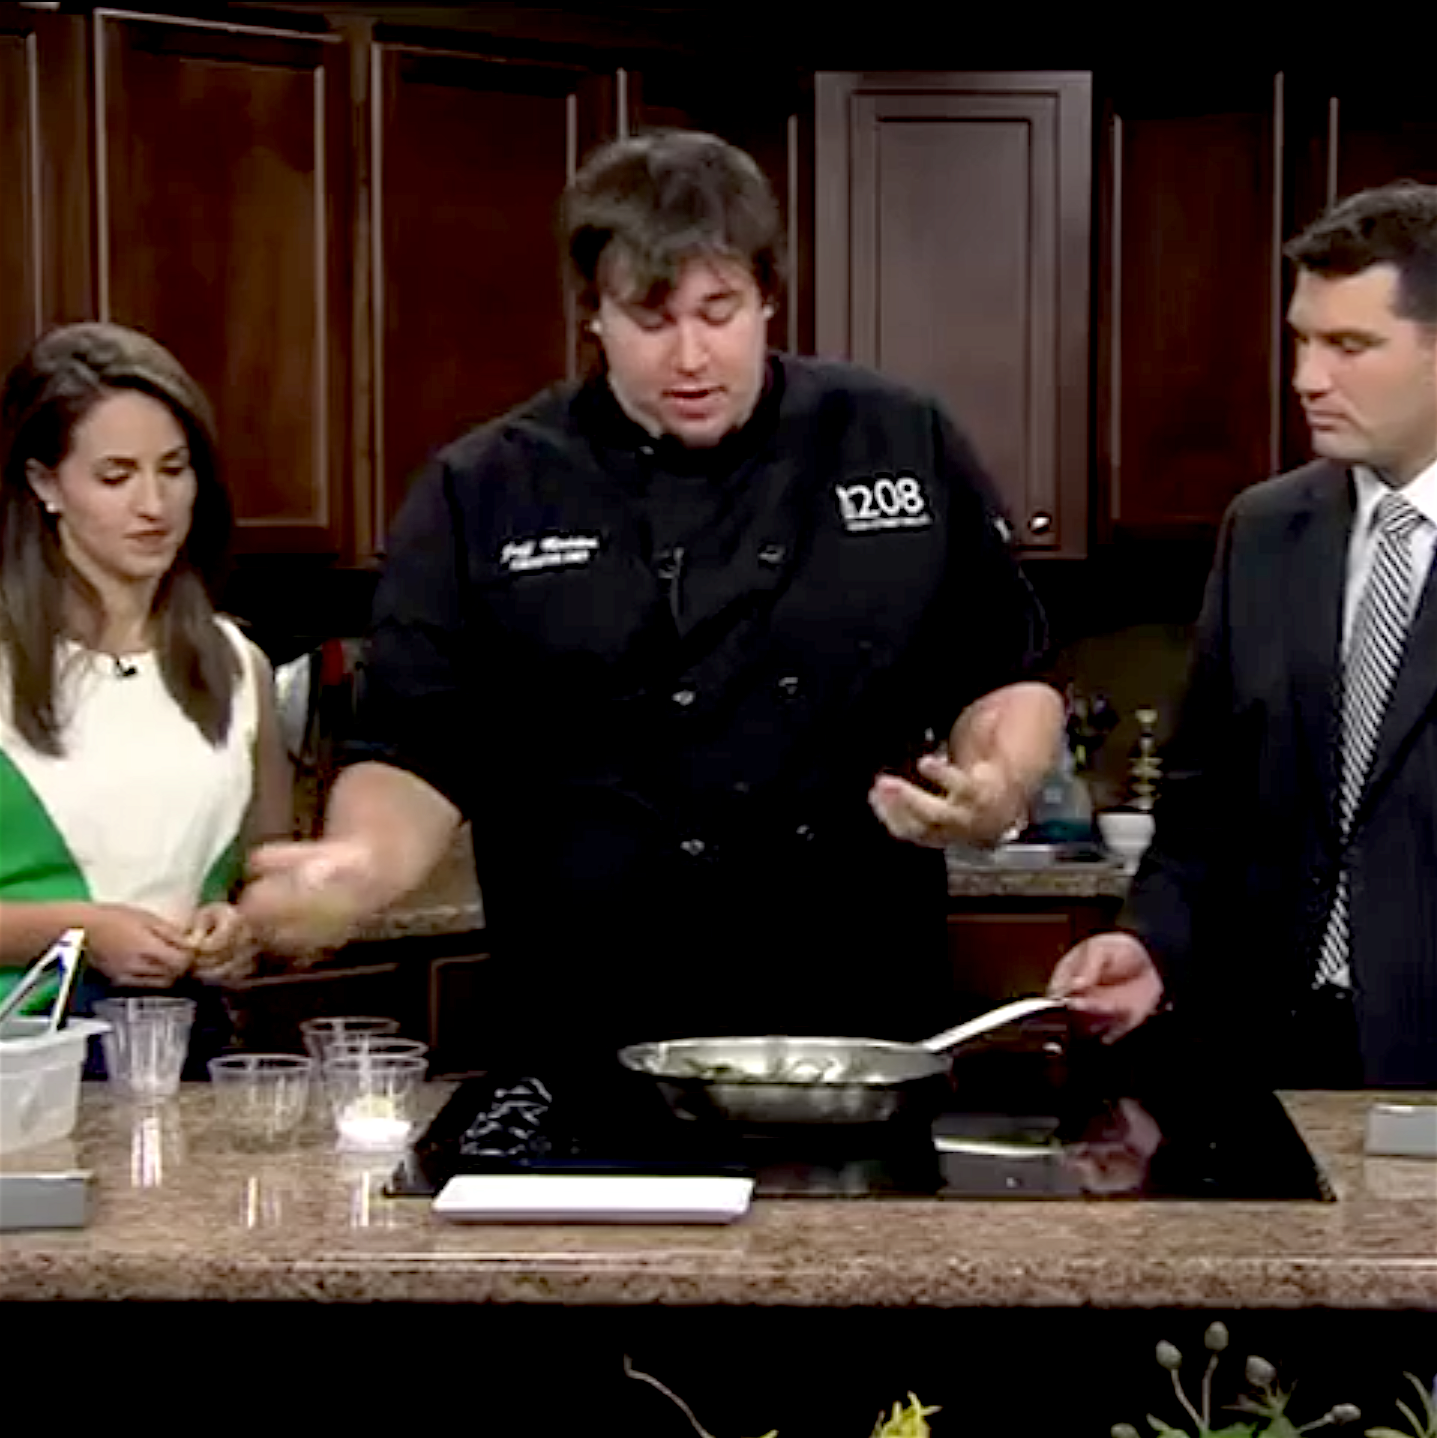 Central Il Proud - Chef Jeff demonstrates how to create an amazing salad with local blueberries, green beans, dijon mustard, garlic and Balsamic vinegar on Good Day Central Illinois